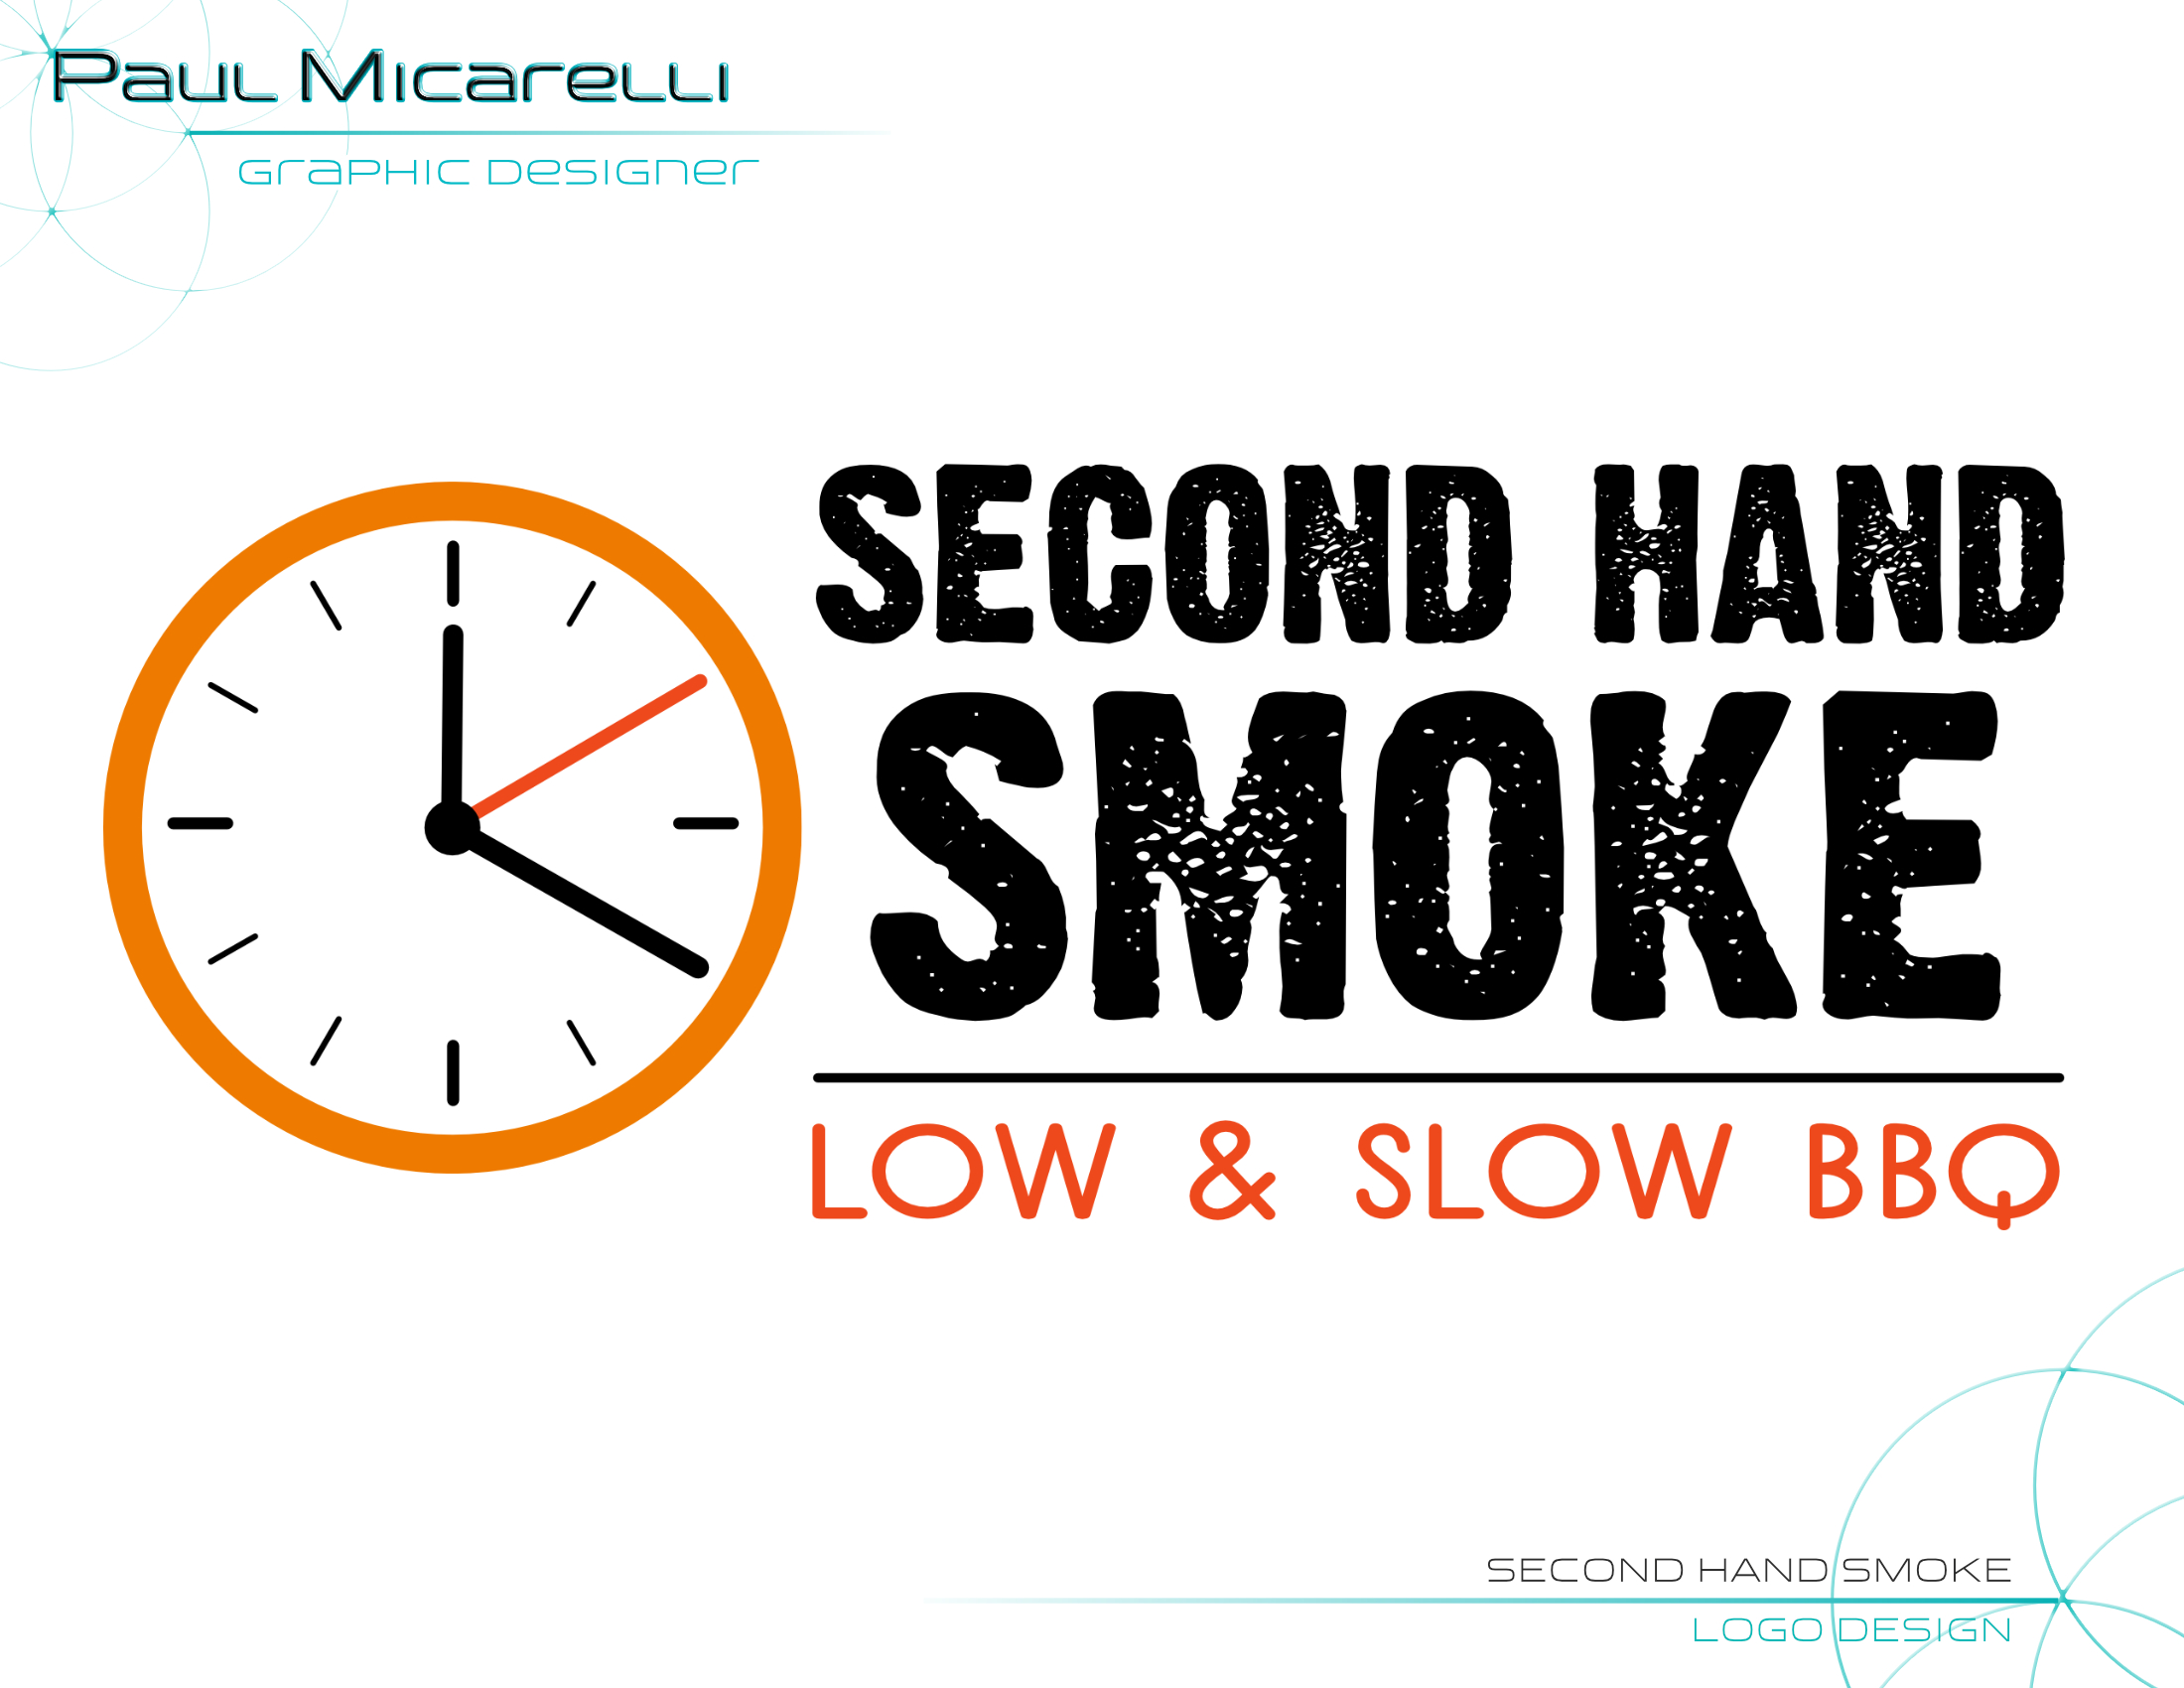 Paul-Micarelli-Second Hand Smoke Logo